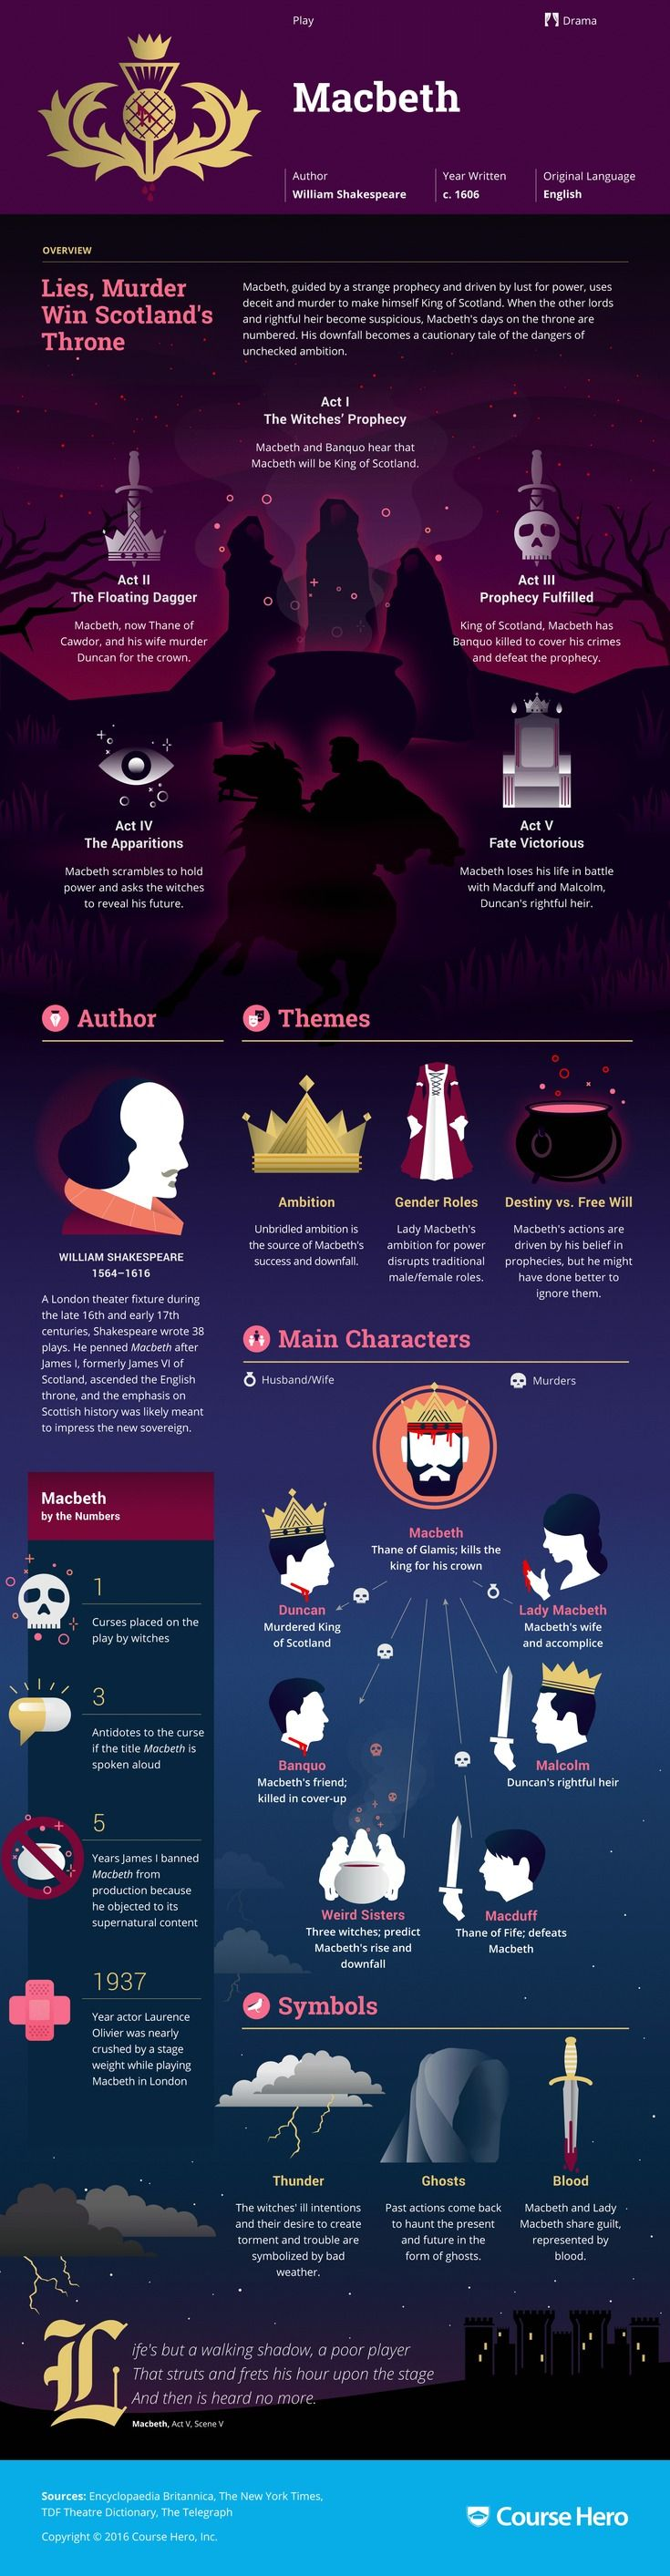 This @CourseHero infographic on Macbeth is both visually stunning and informative!